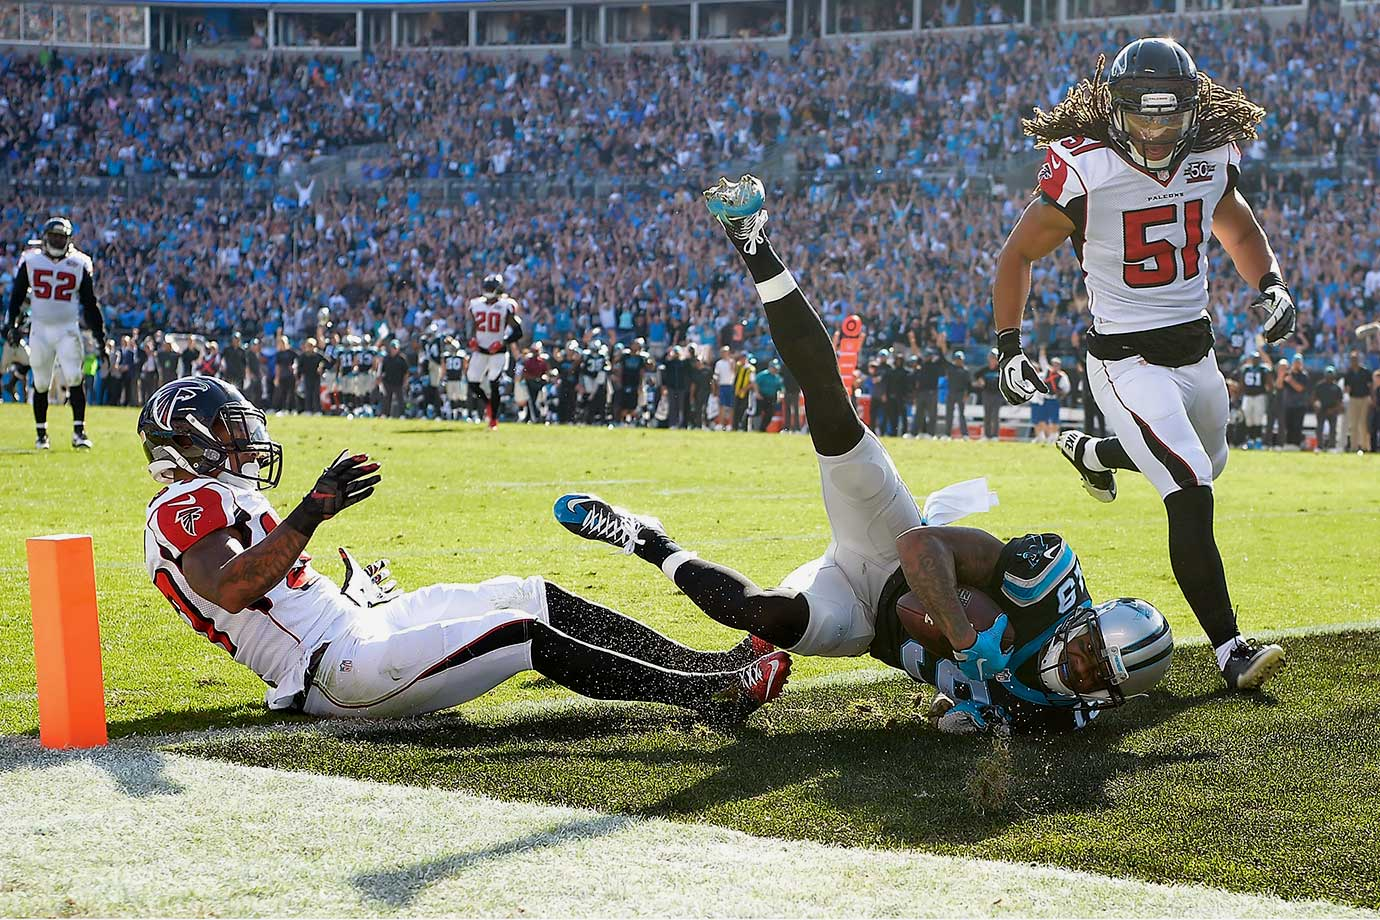 A division matchup with the Atlanta Falcons ended in a dominant 38-0 victory for Carolina. Two long touchdown passes to Ginn—74 and 46 yards, respectively—gave Carolina a 21-0 first-quarter lead. The Panthers never looked back, adding Ed Dickson and Fozzy Whittaker touchdowns to beat the Falcons 38-0.